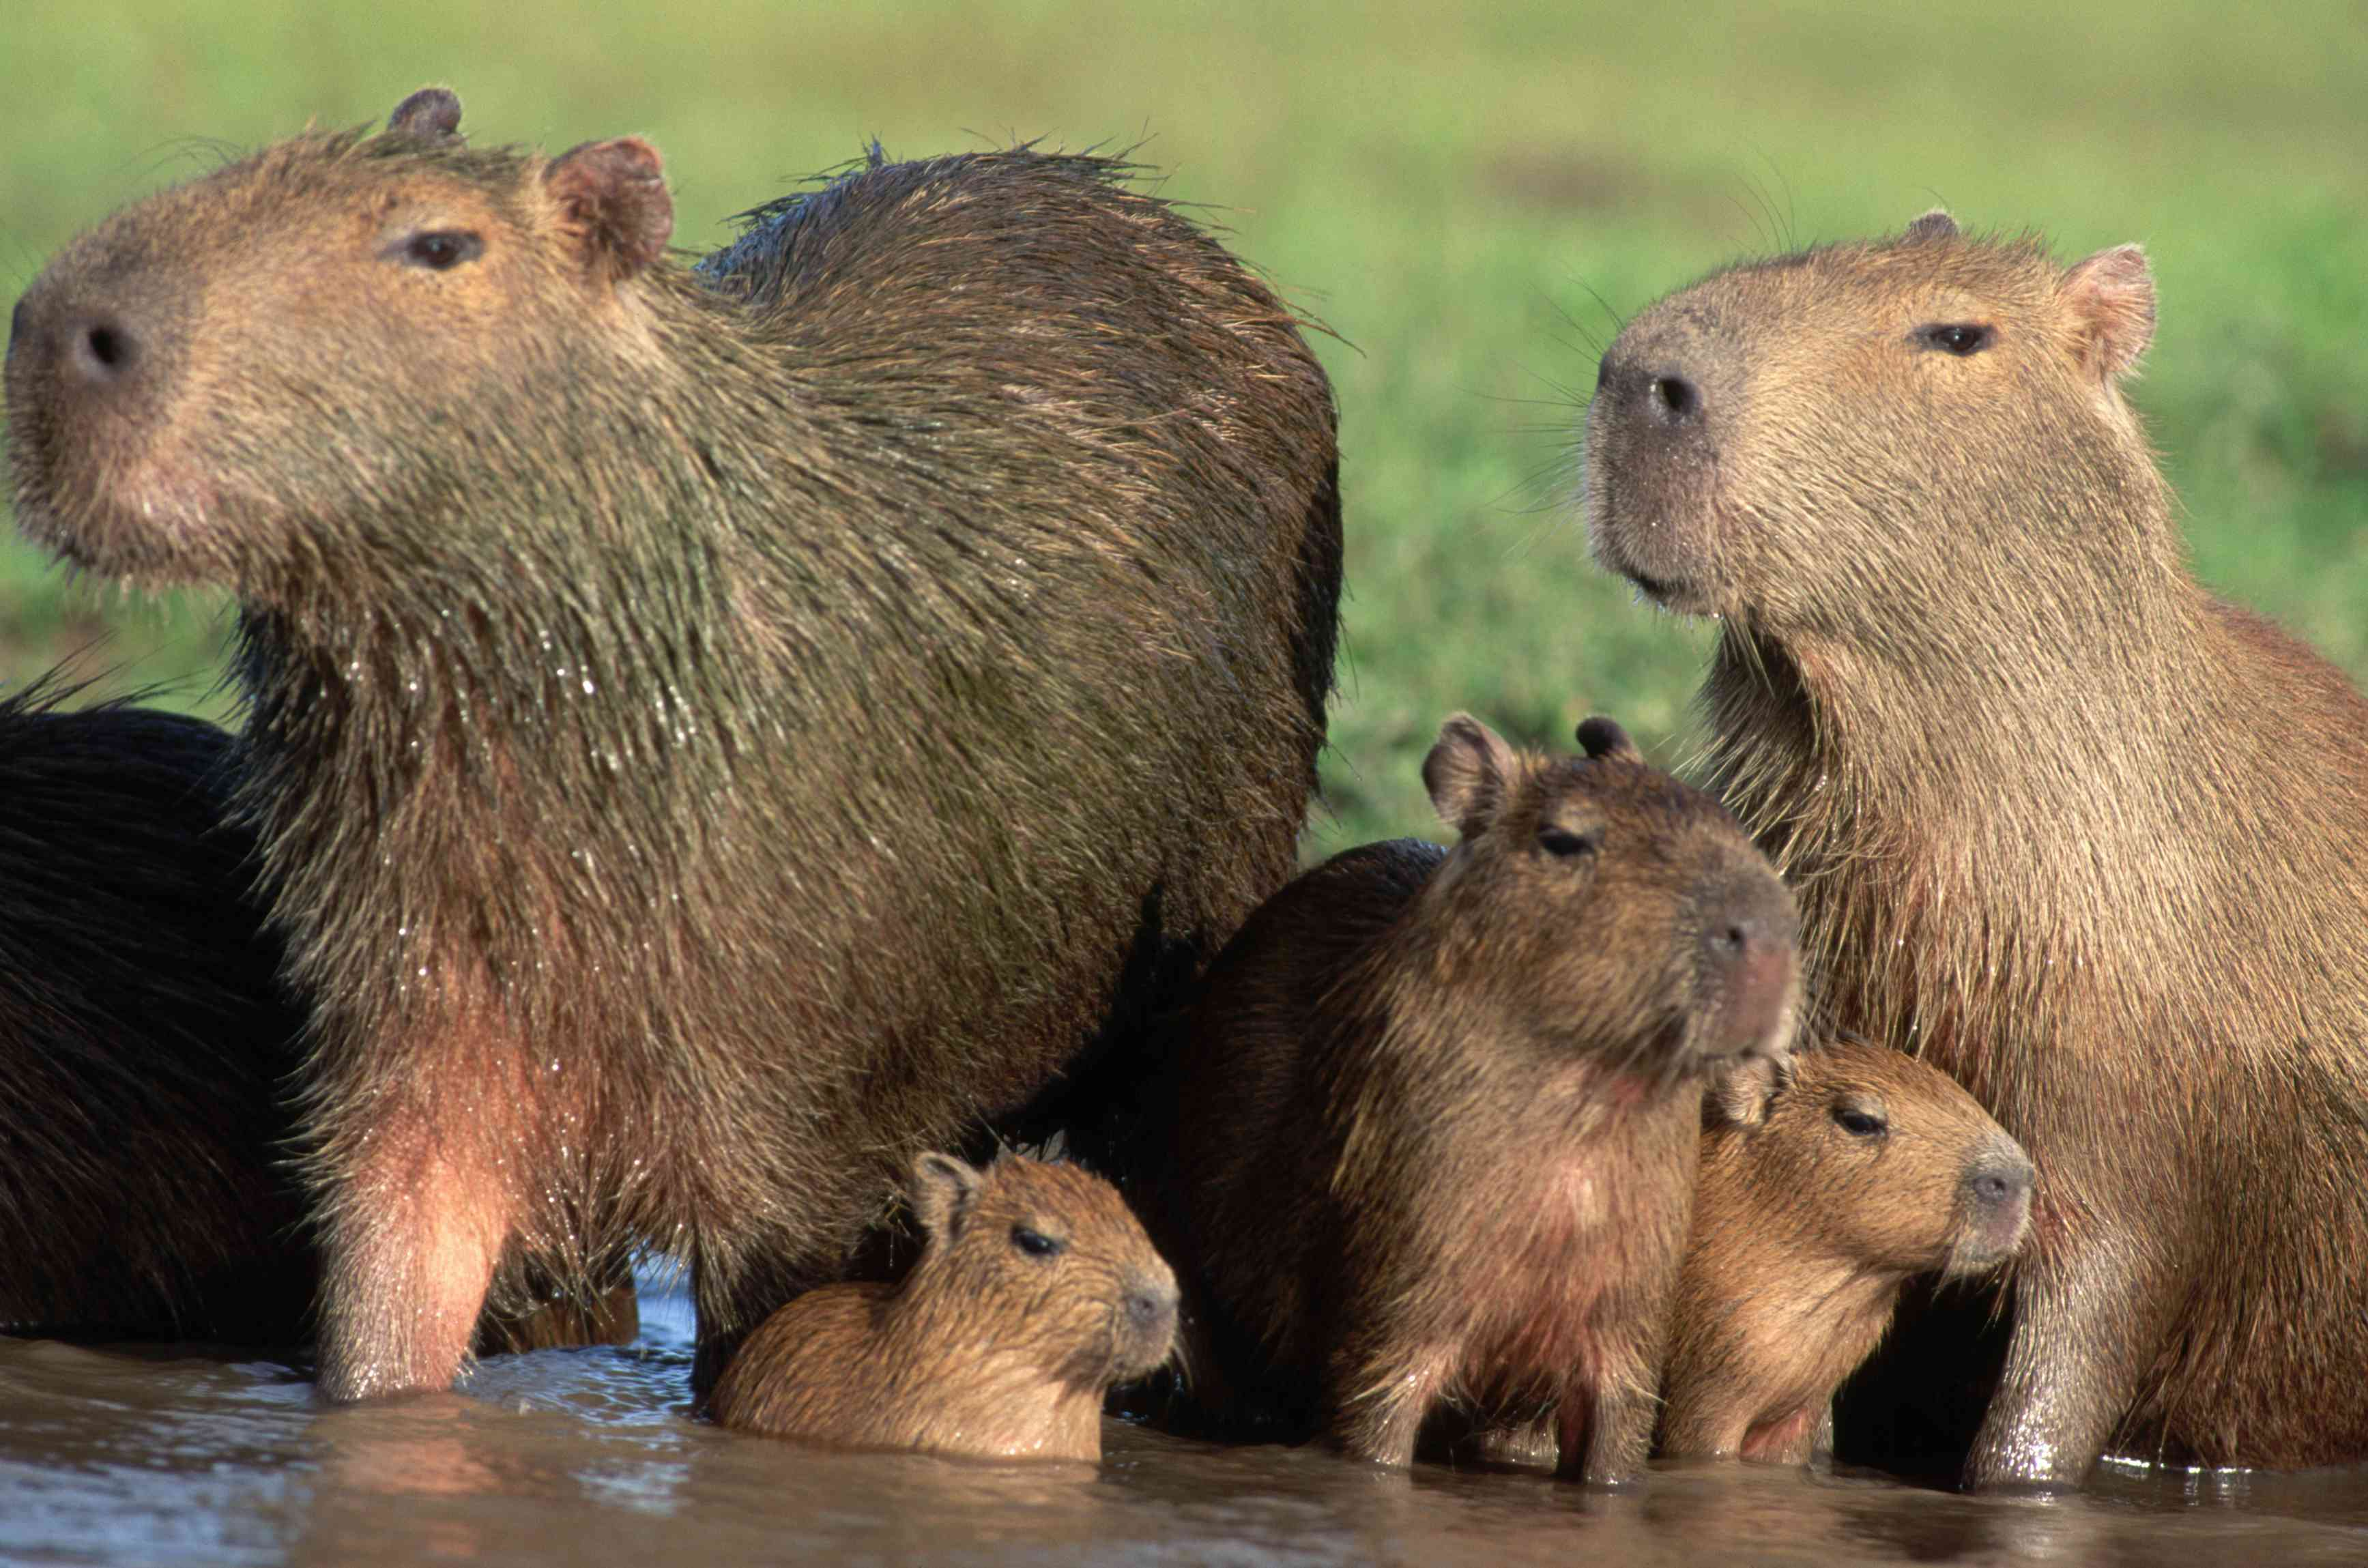 A group of capybaras with two adults, two babies, and one young capybara